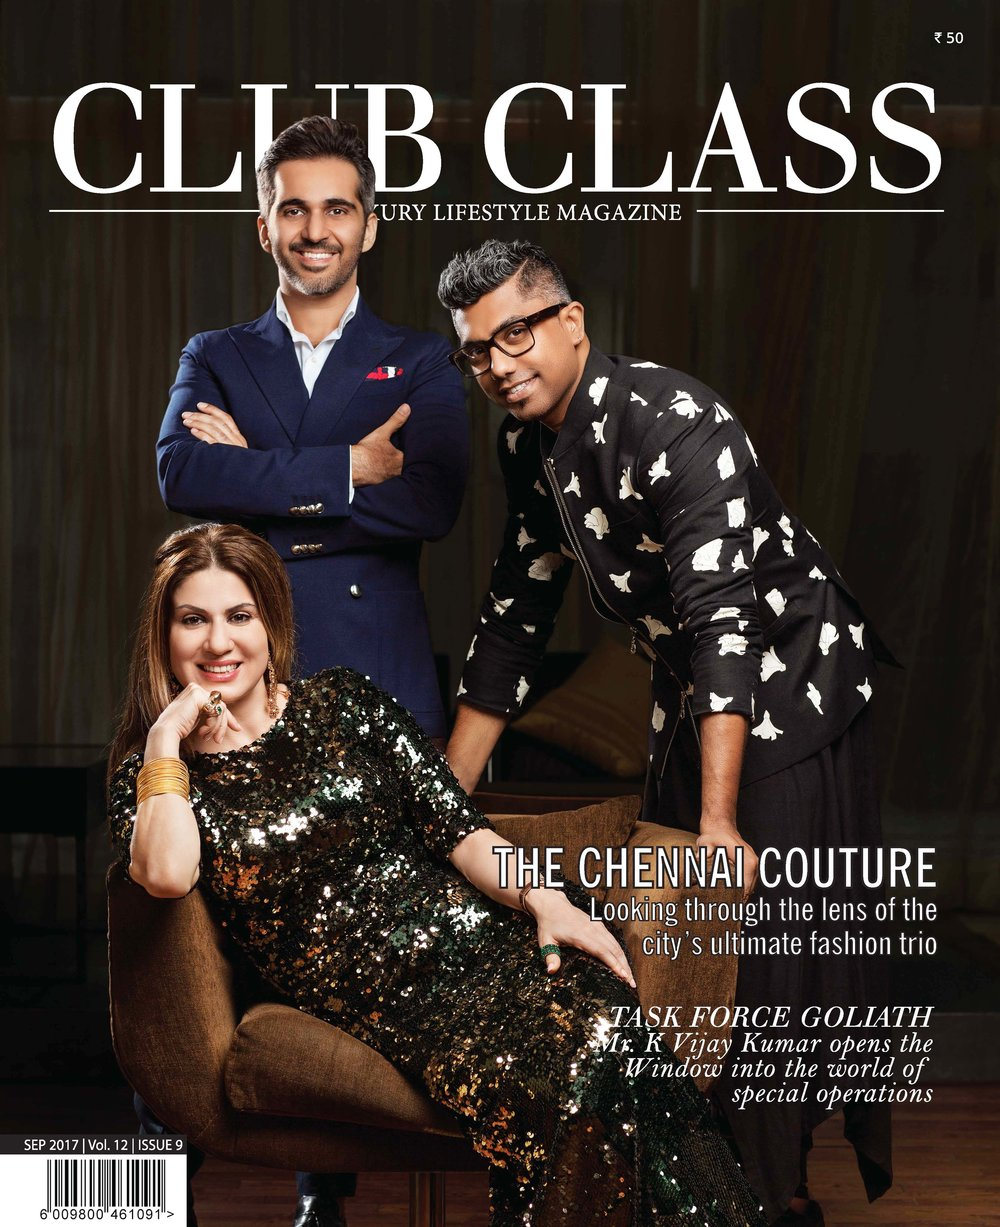 Club Class Magazine Cover - Sept 2017.jpg